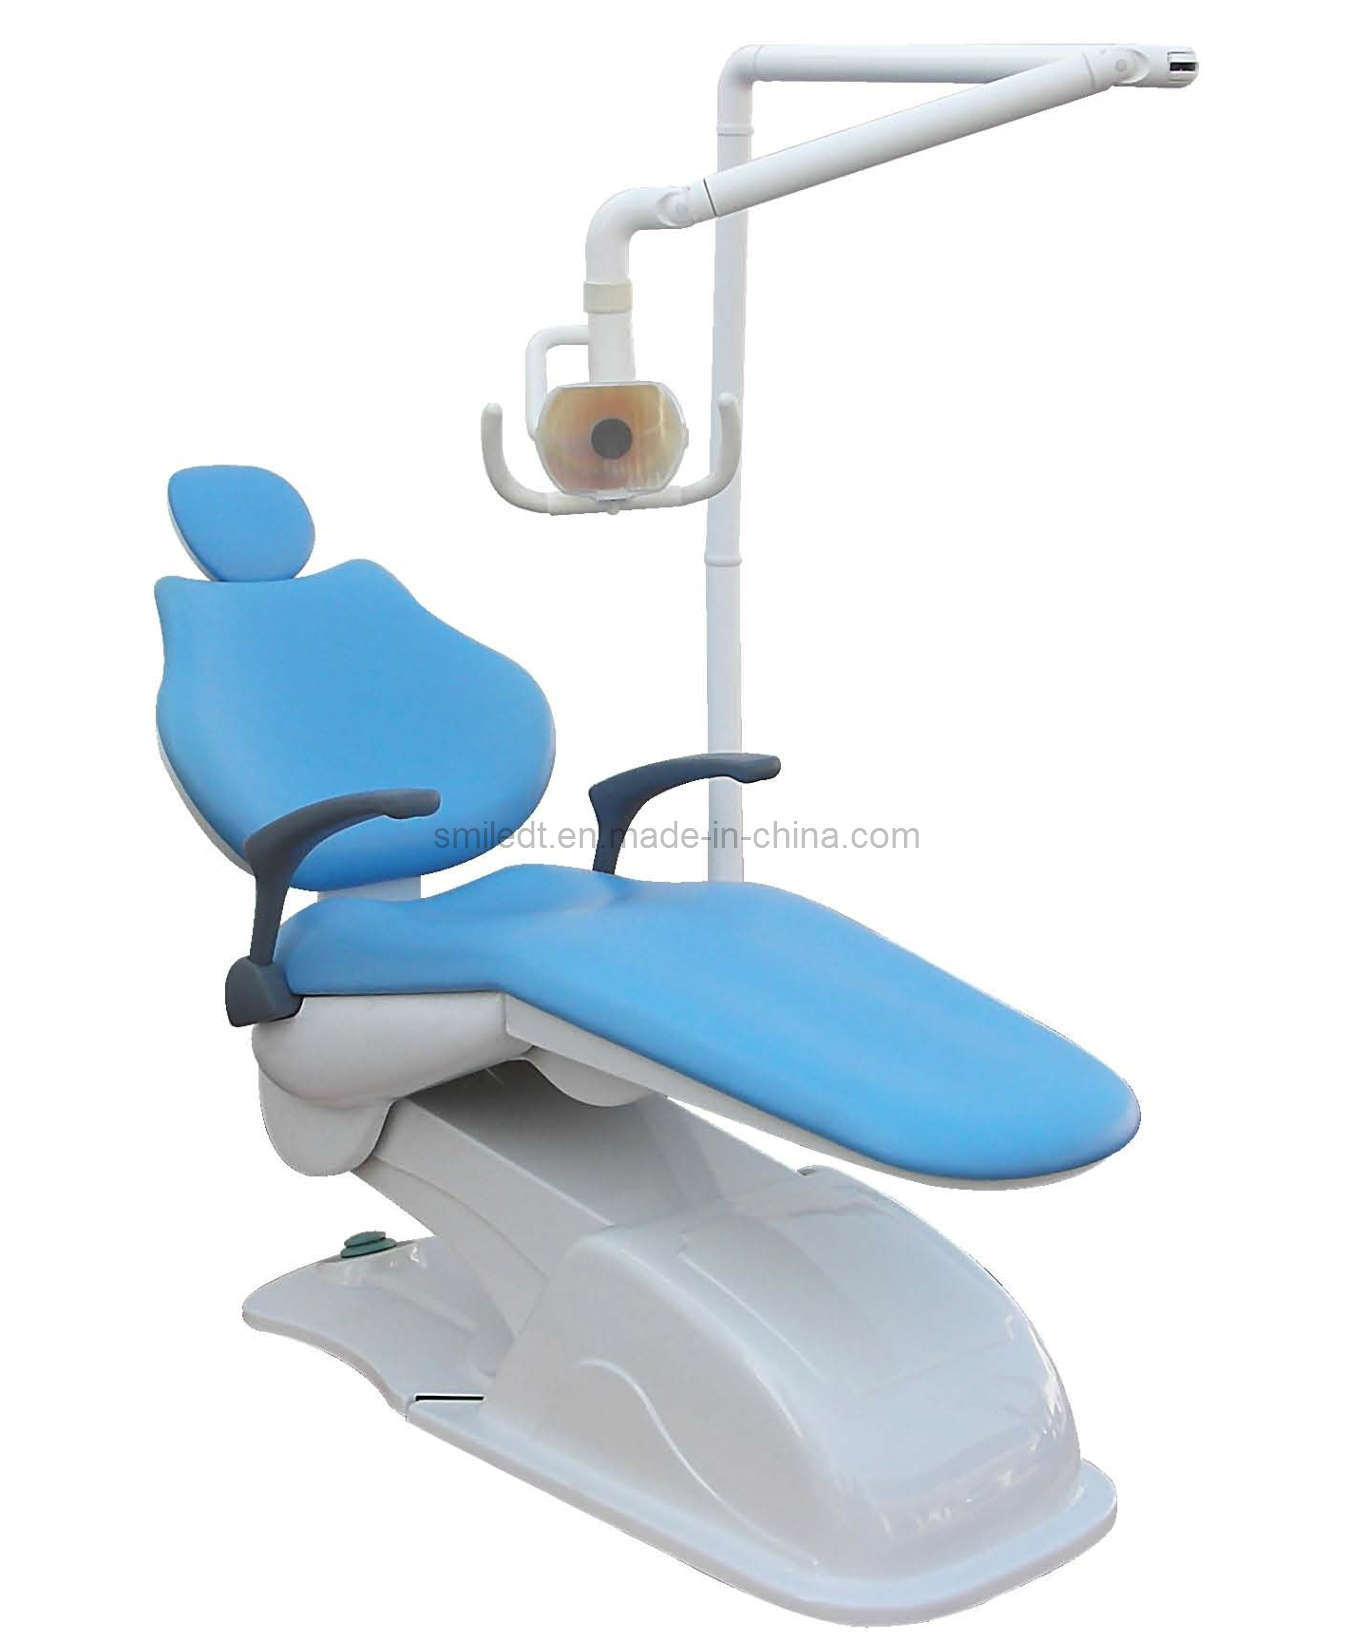 chair with light design competition china ce approved dental photos